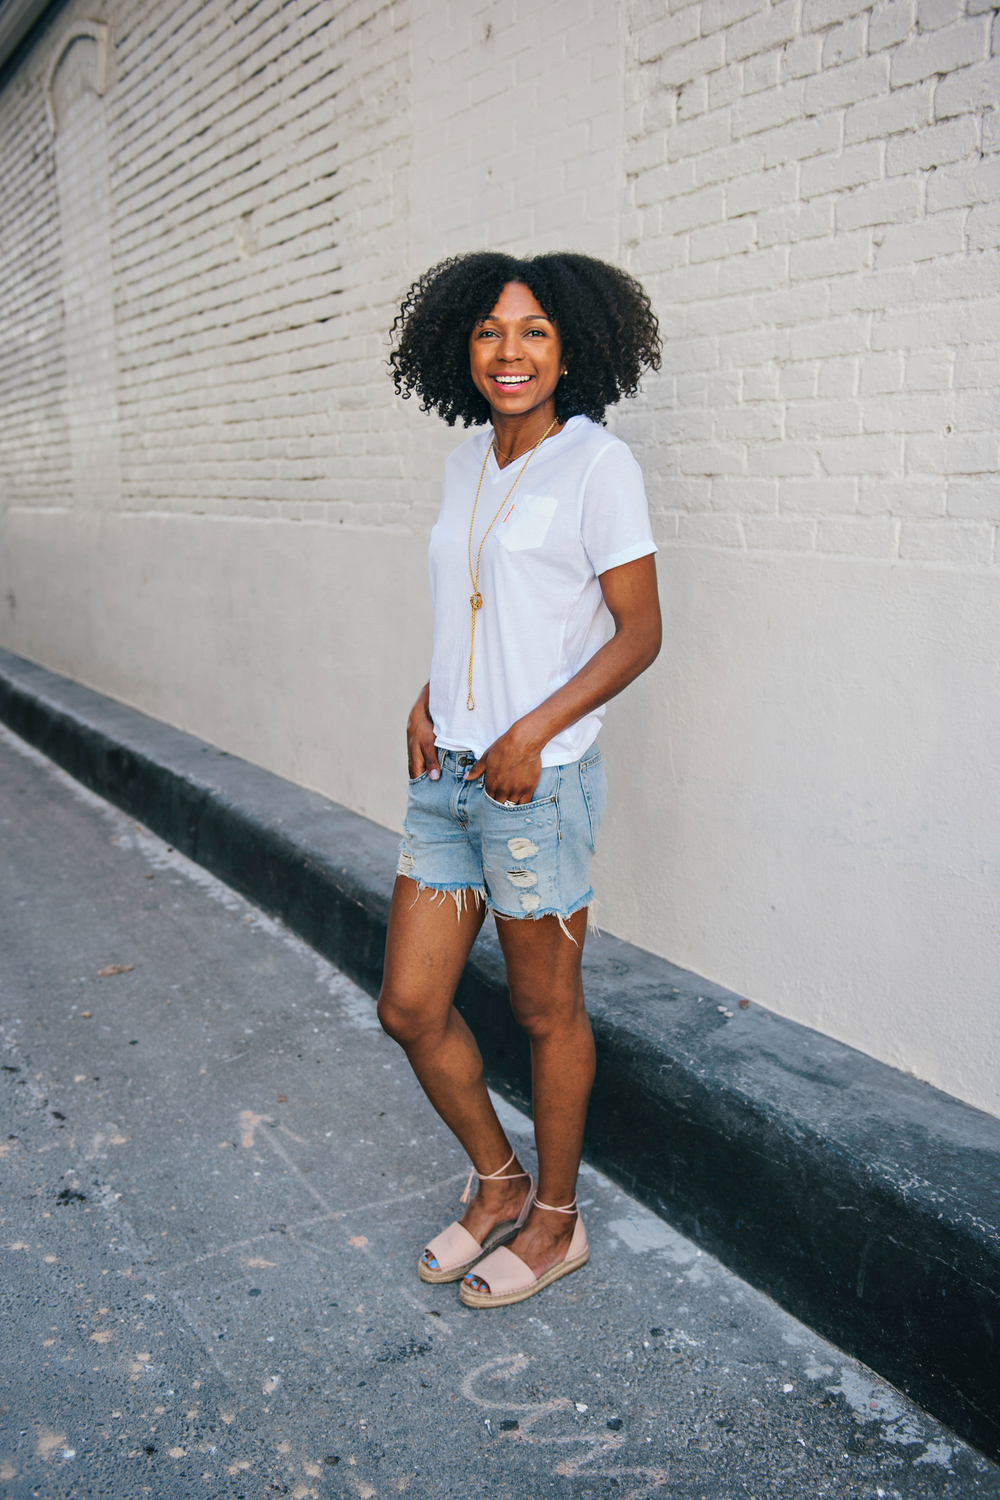 Babes!! Shorts and sandals. It doesn't get any easier than that. This look gets me ready for cruiser rides and summer strolls. Who's ready?!!